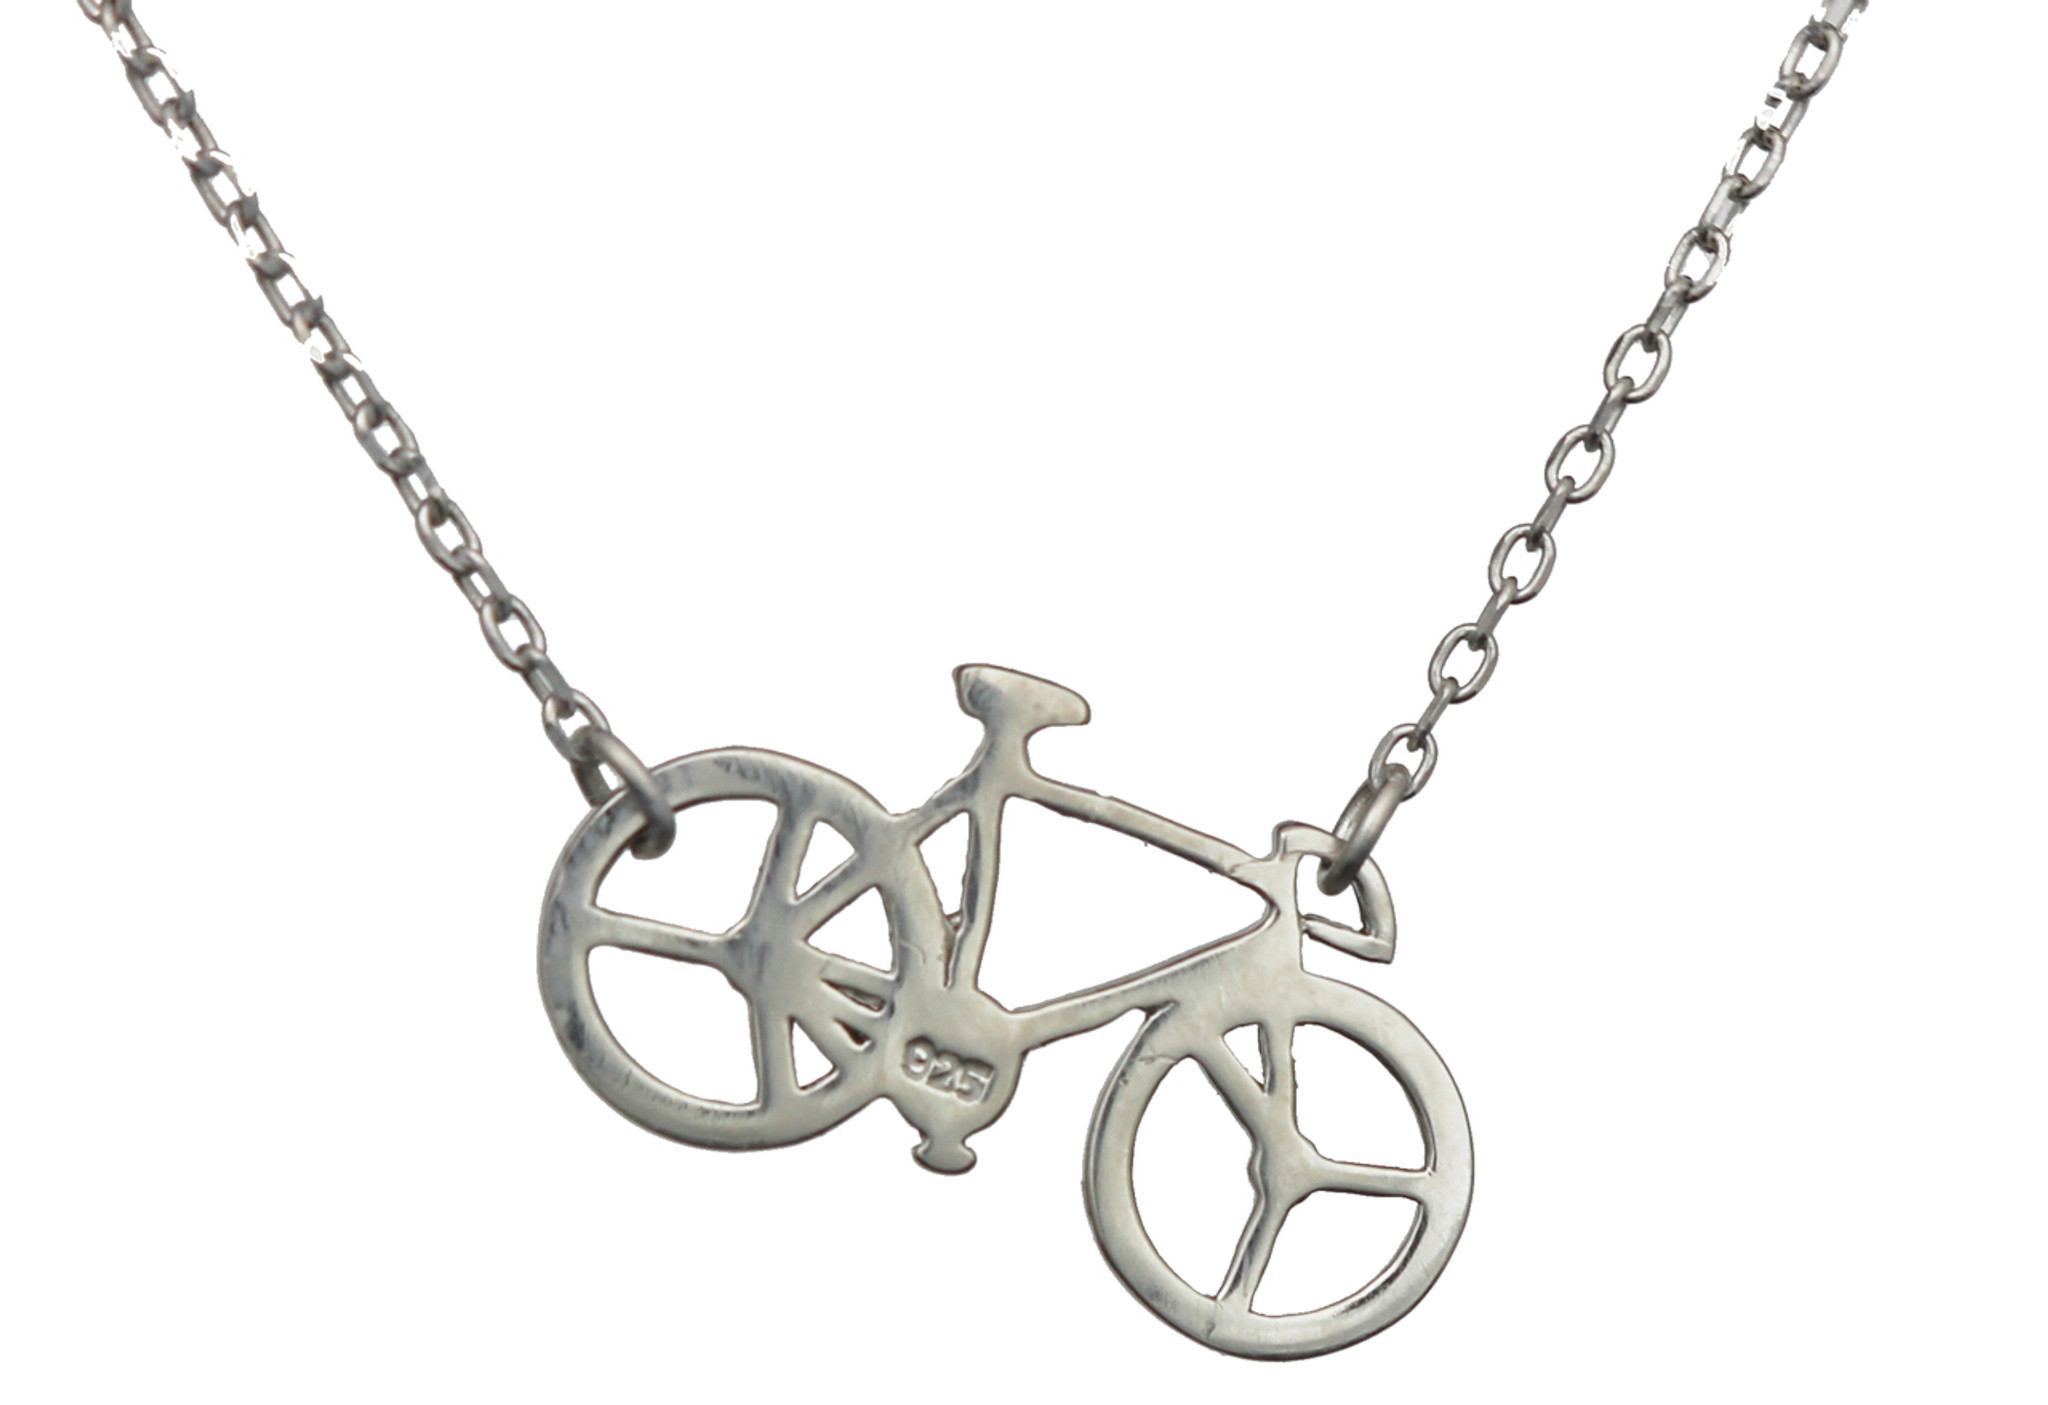 Hardware Three Strand Rivet Necklace Bike Gift Upcycled Bike Necklace Recycled Bike Chain Cyclist present Industrial and Delicate